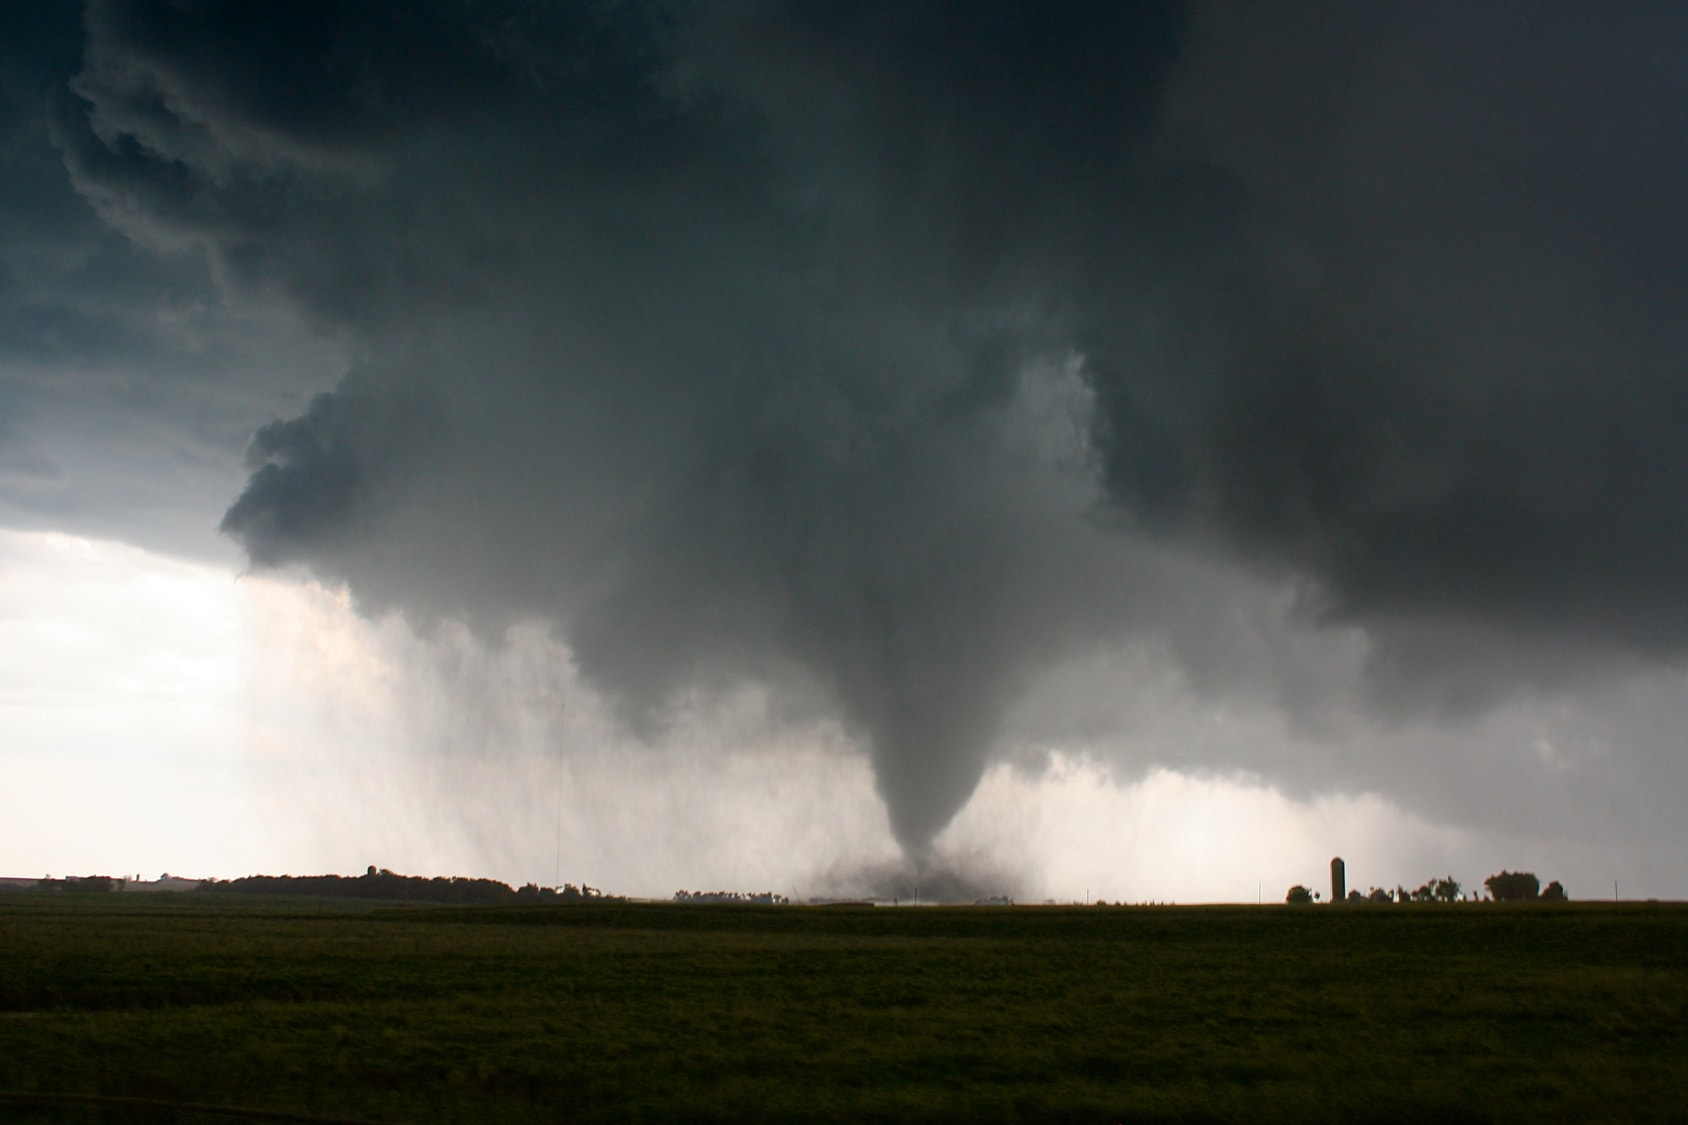 Tornado Season Safety And Survivalimage preview